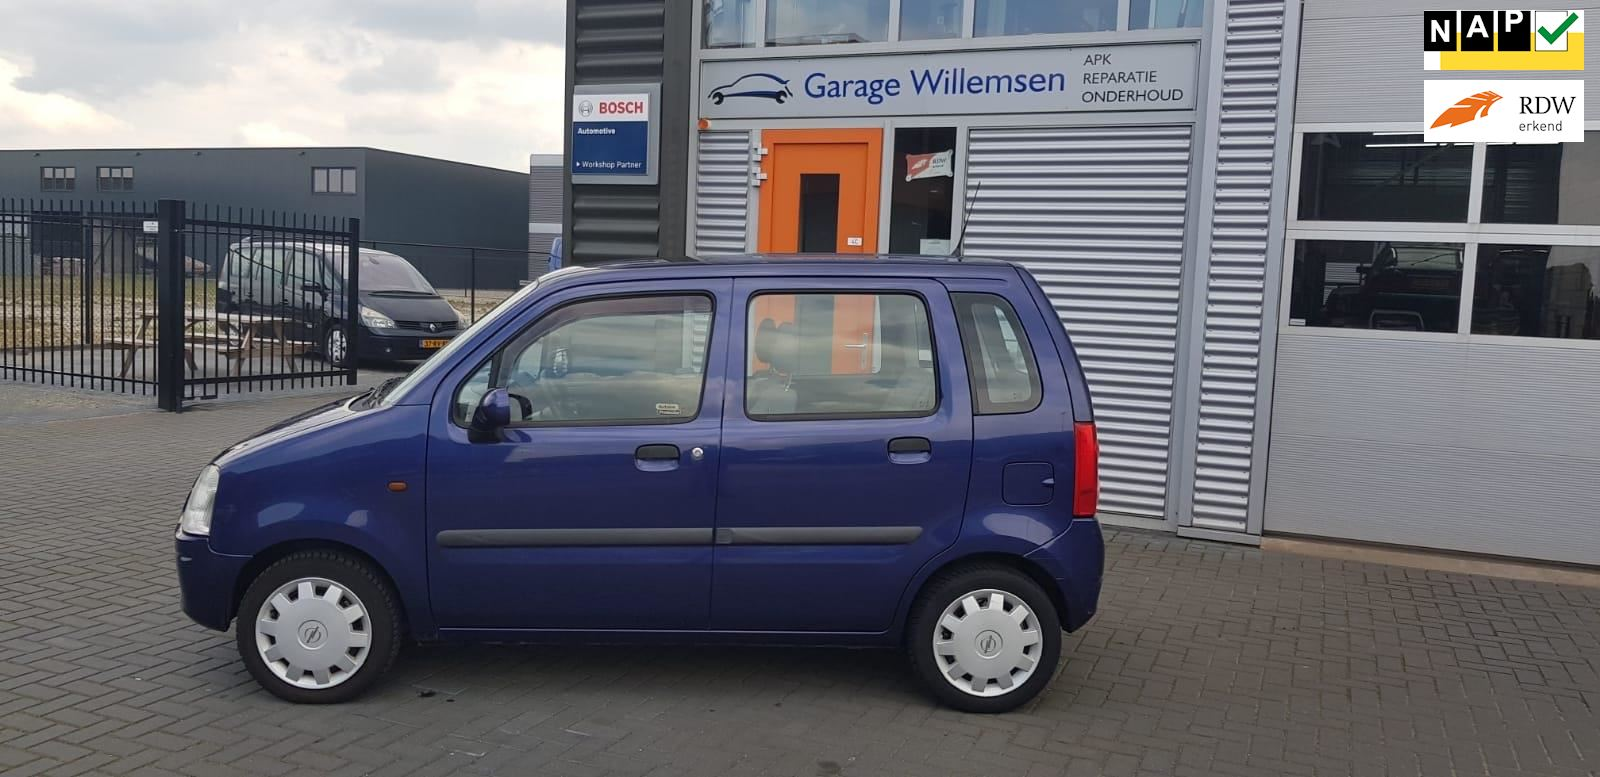 Opel Agila occasion - Garage Willemsen